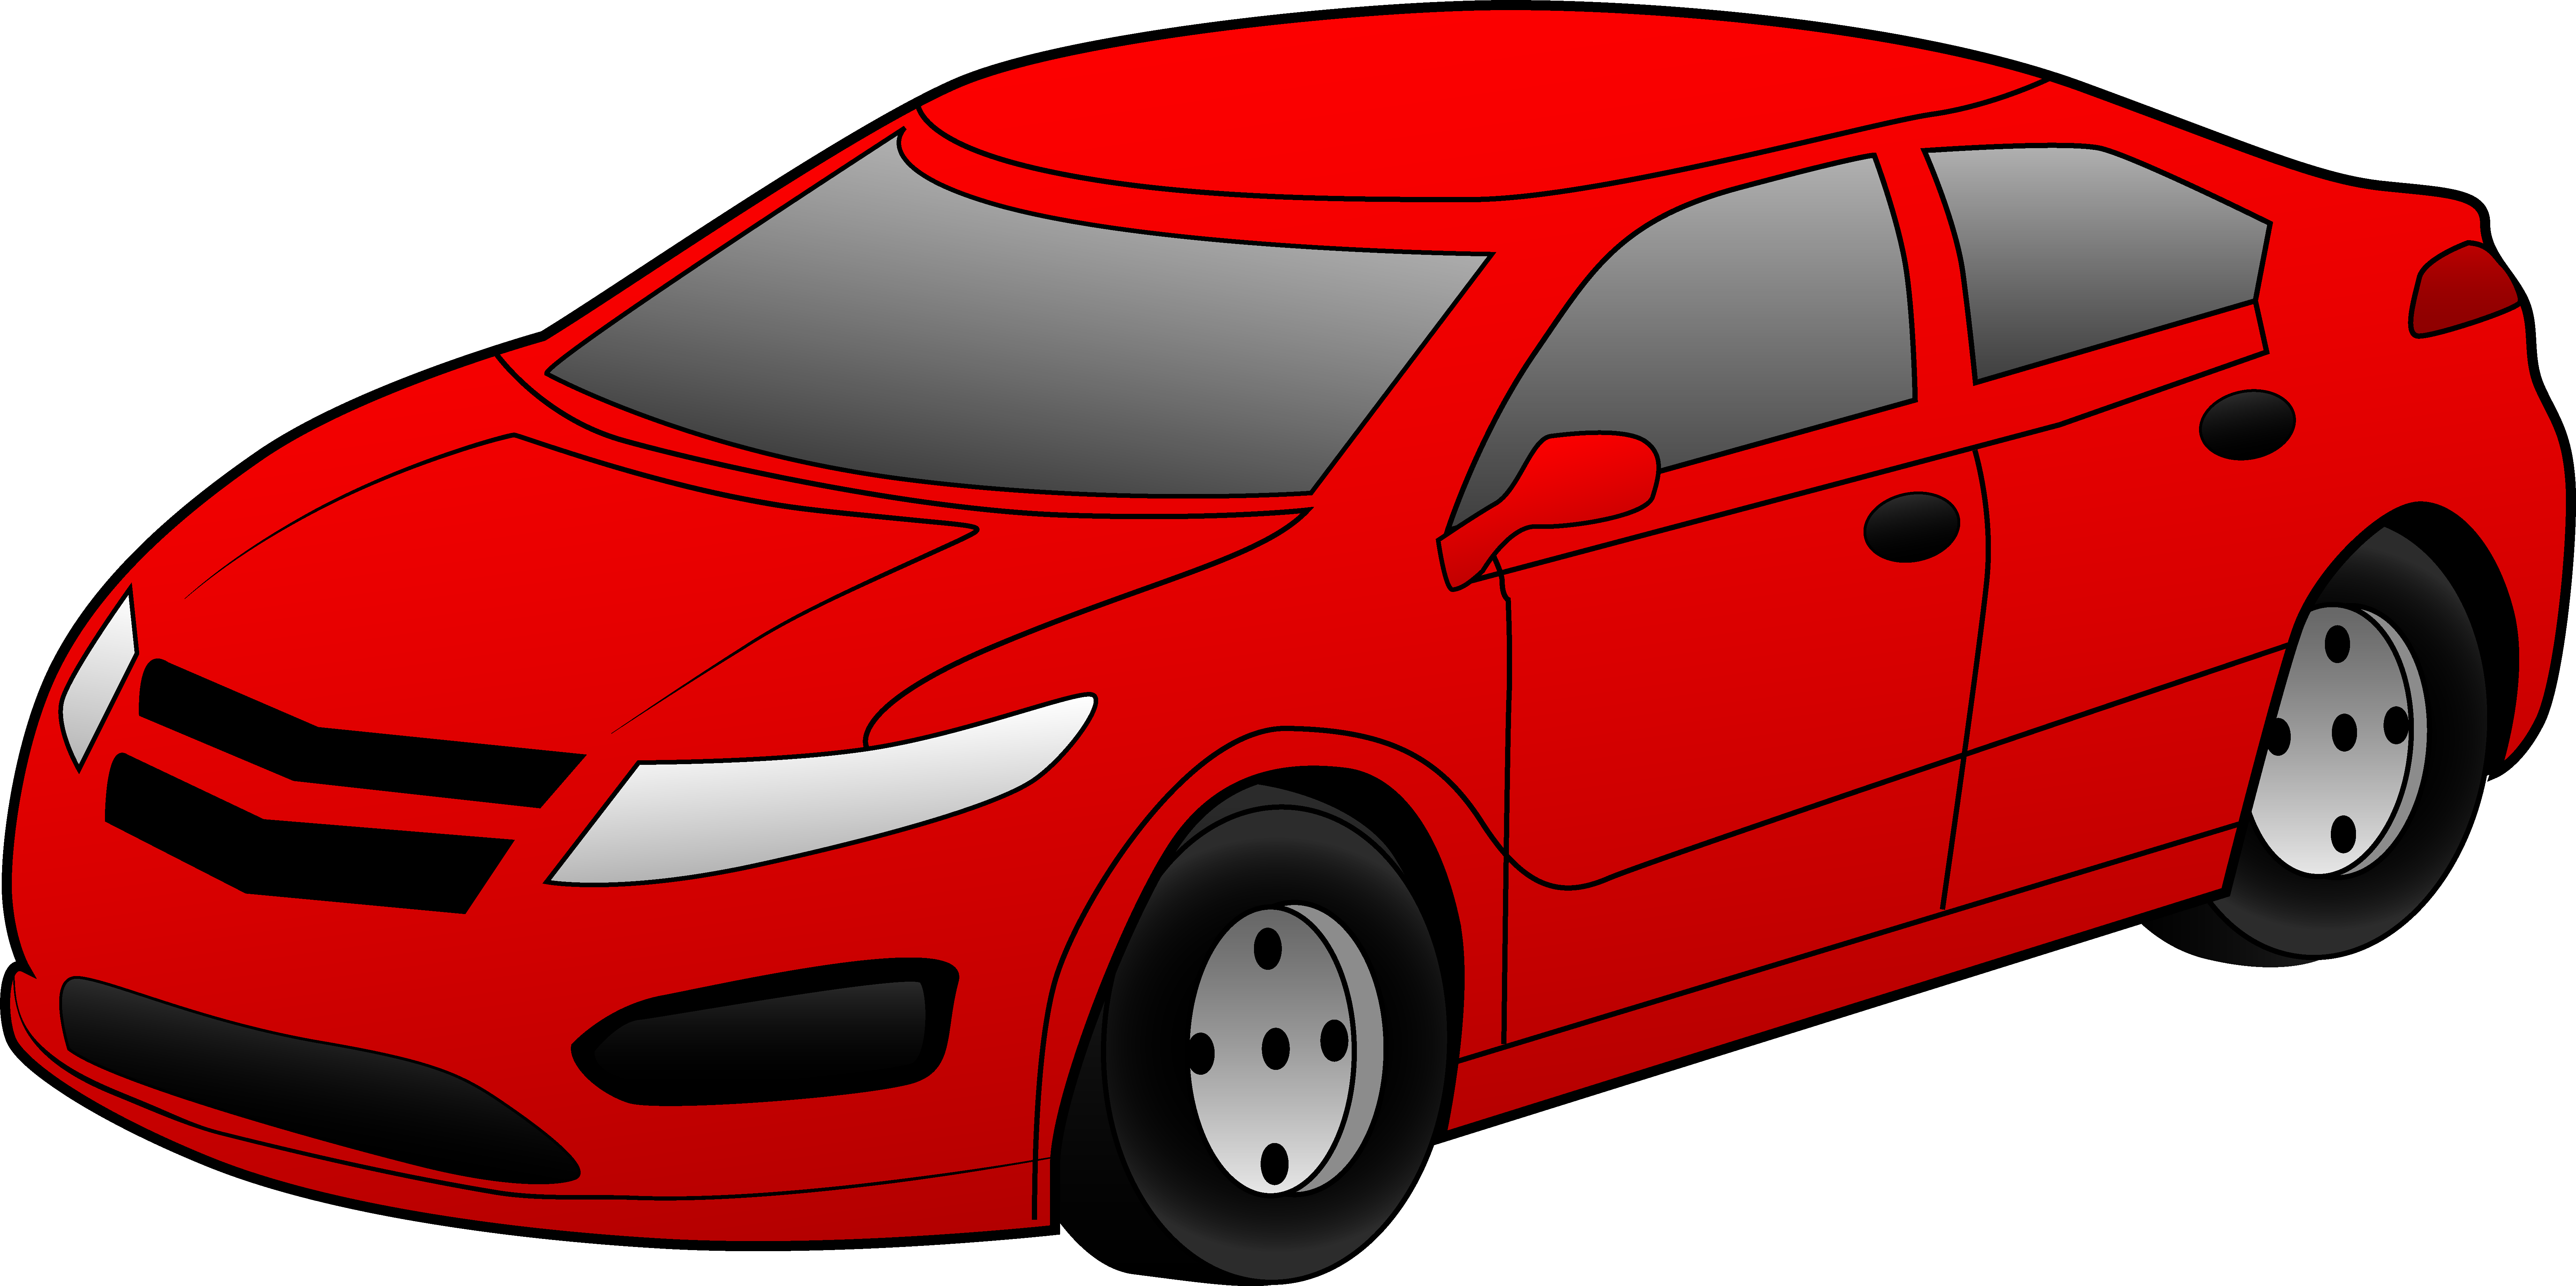 Fast Truck Clipart | Clipart Panda - Free Clipart Images